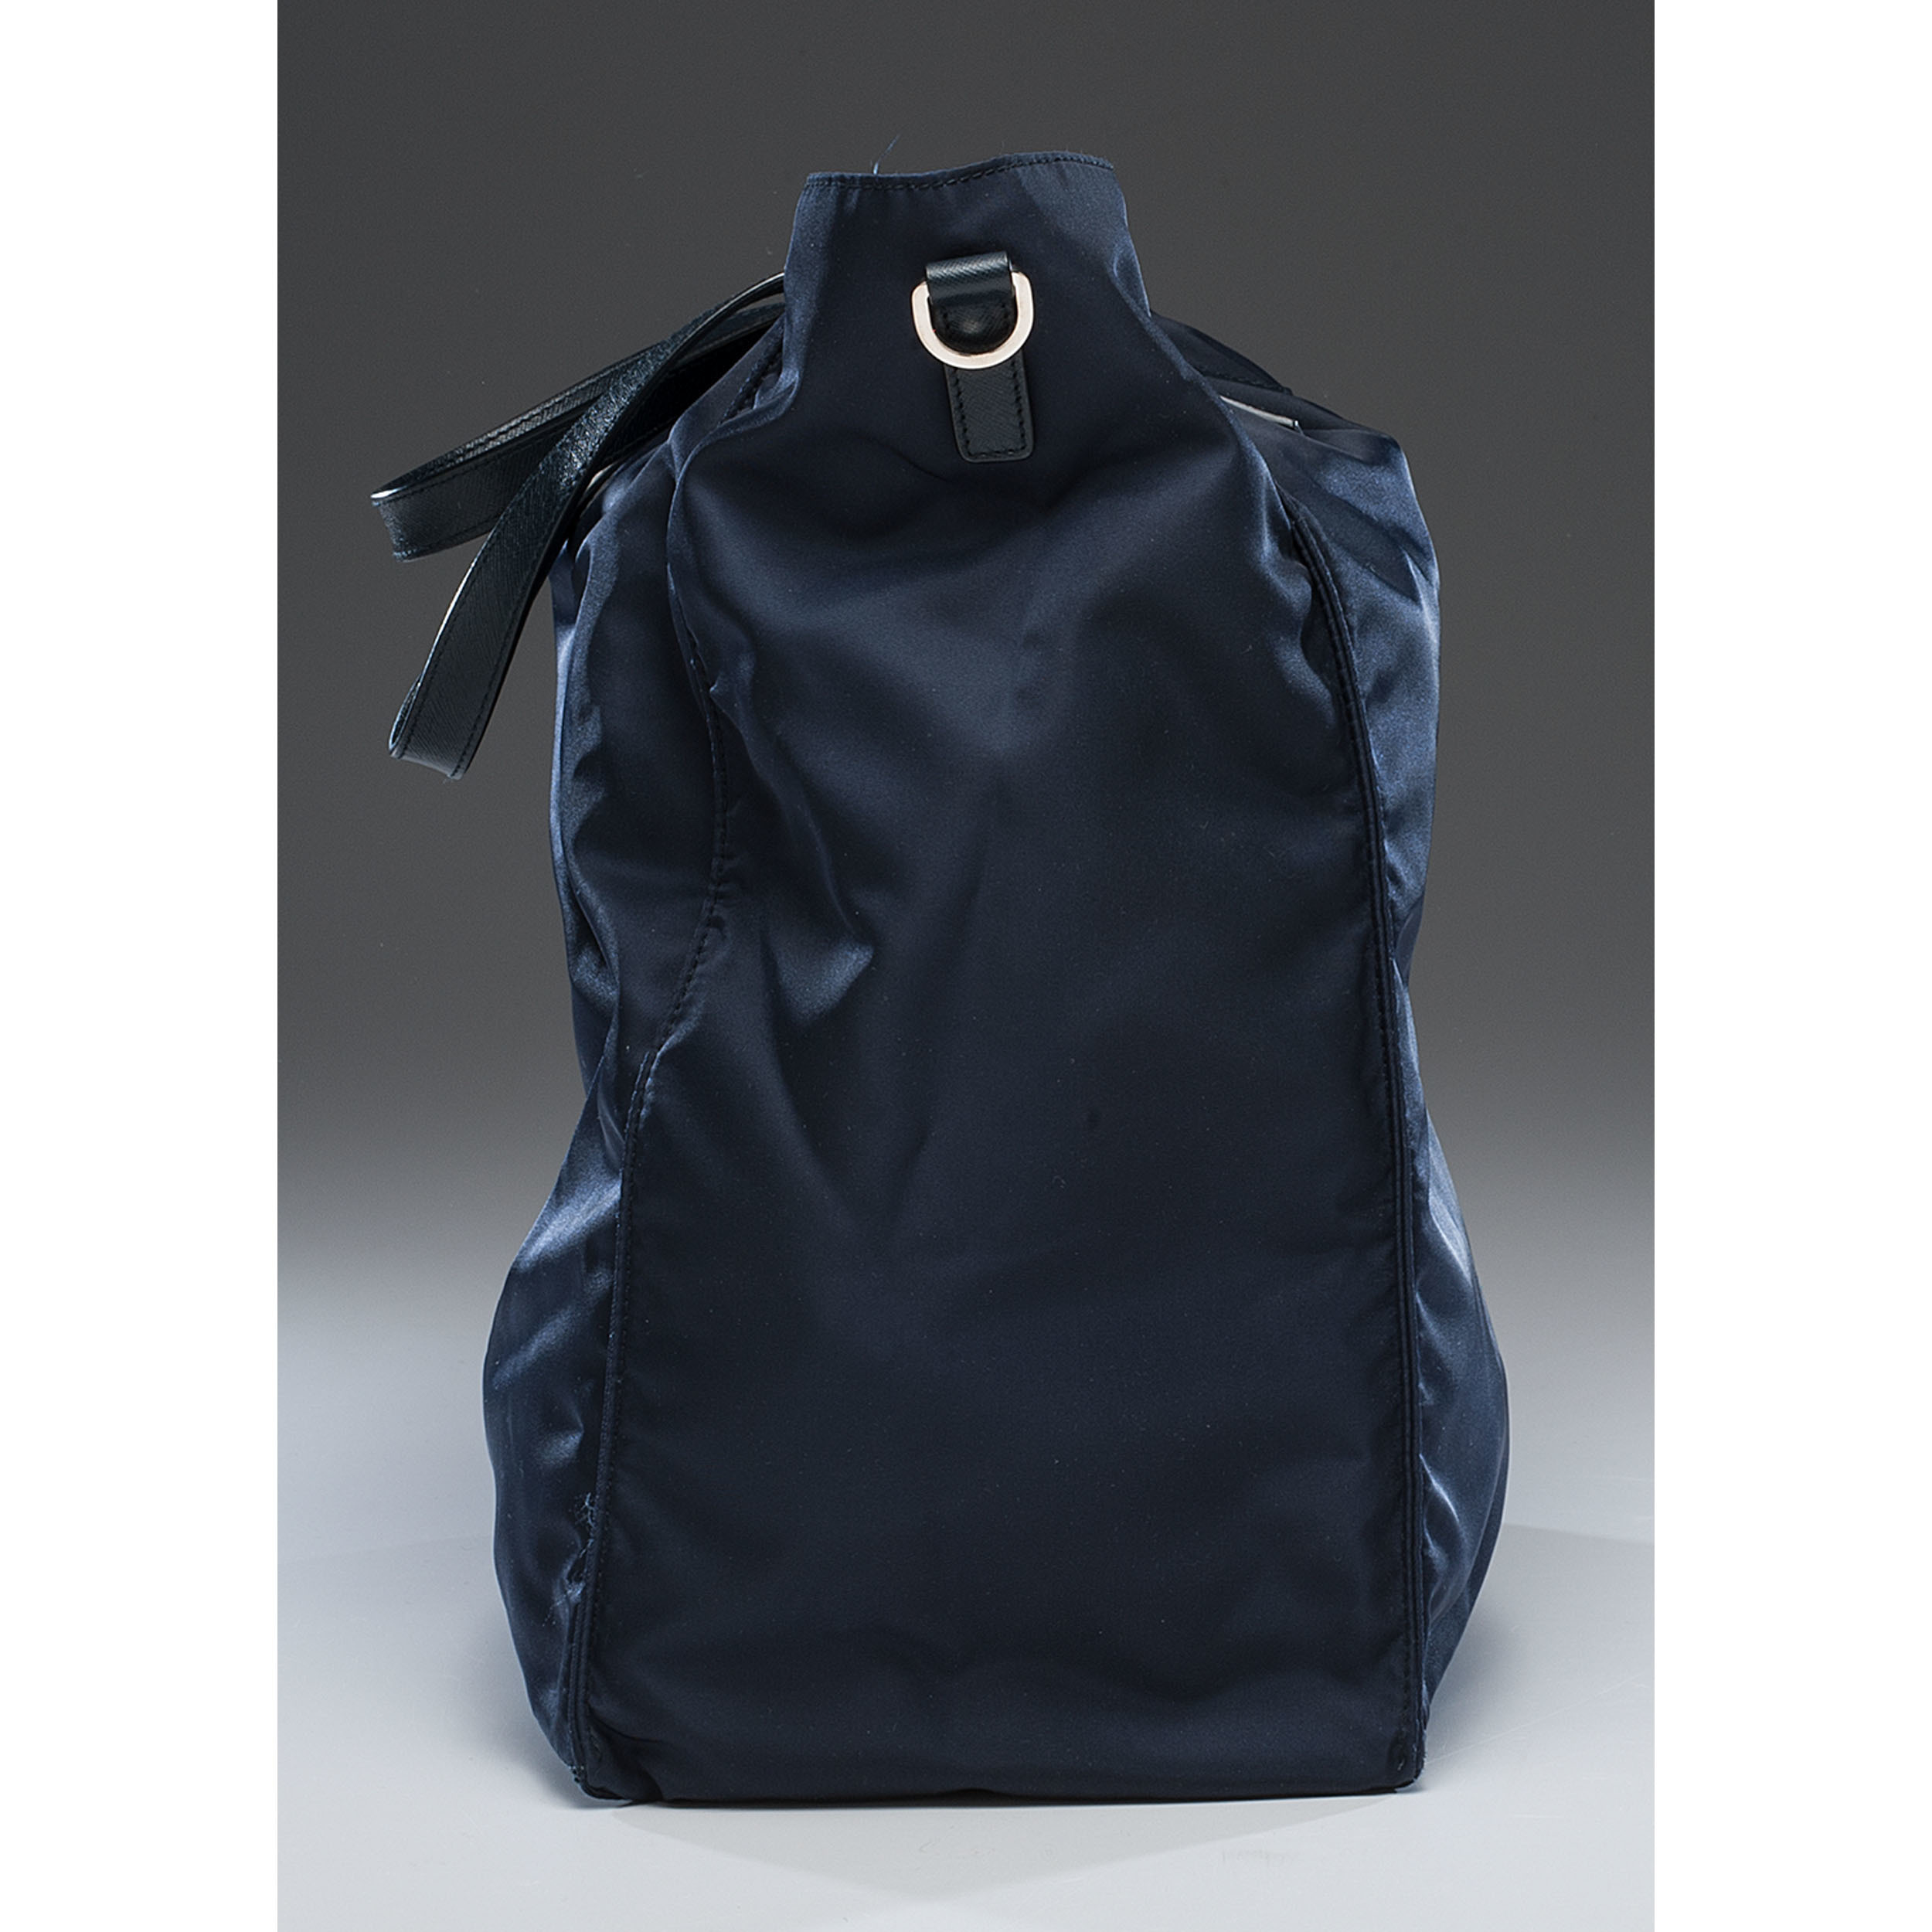 ... australia prada navy nylon zip tote bag with strap 2b5ef fe2d5 ... 27786c9ae118d